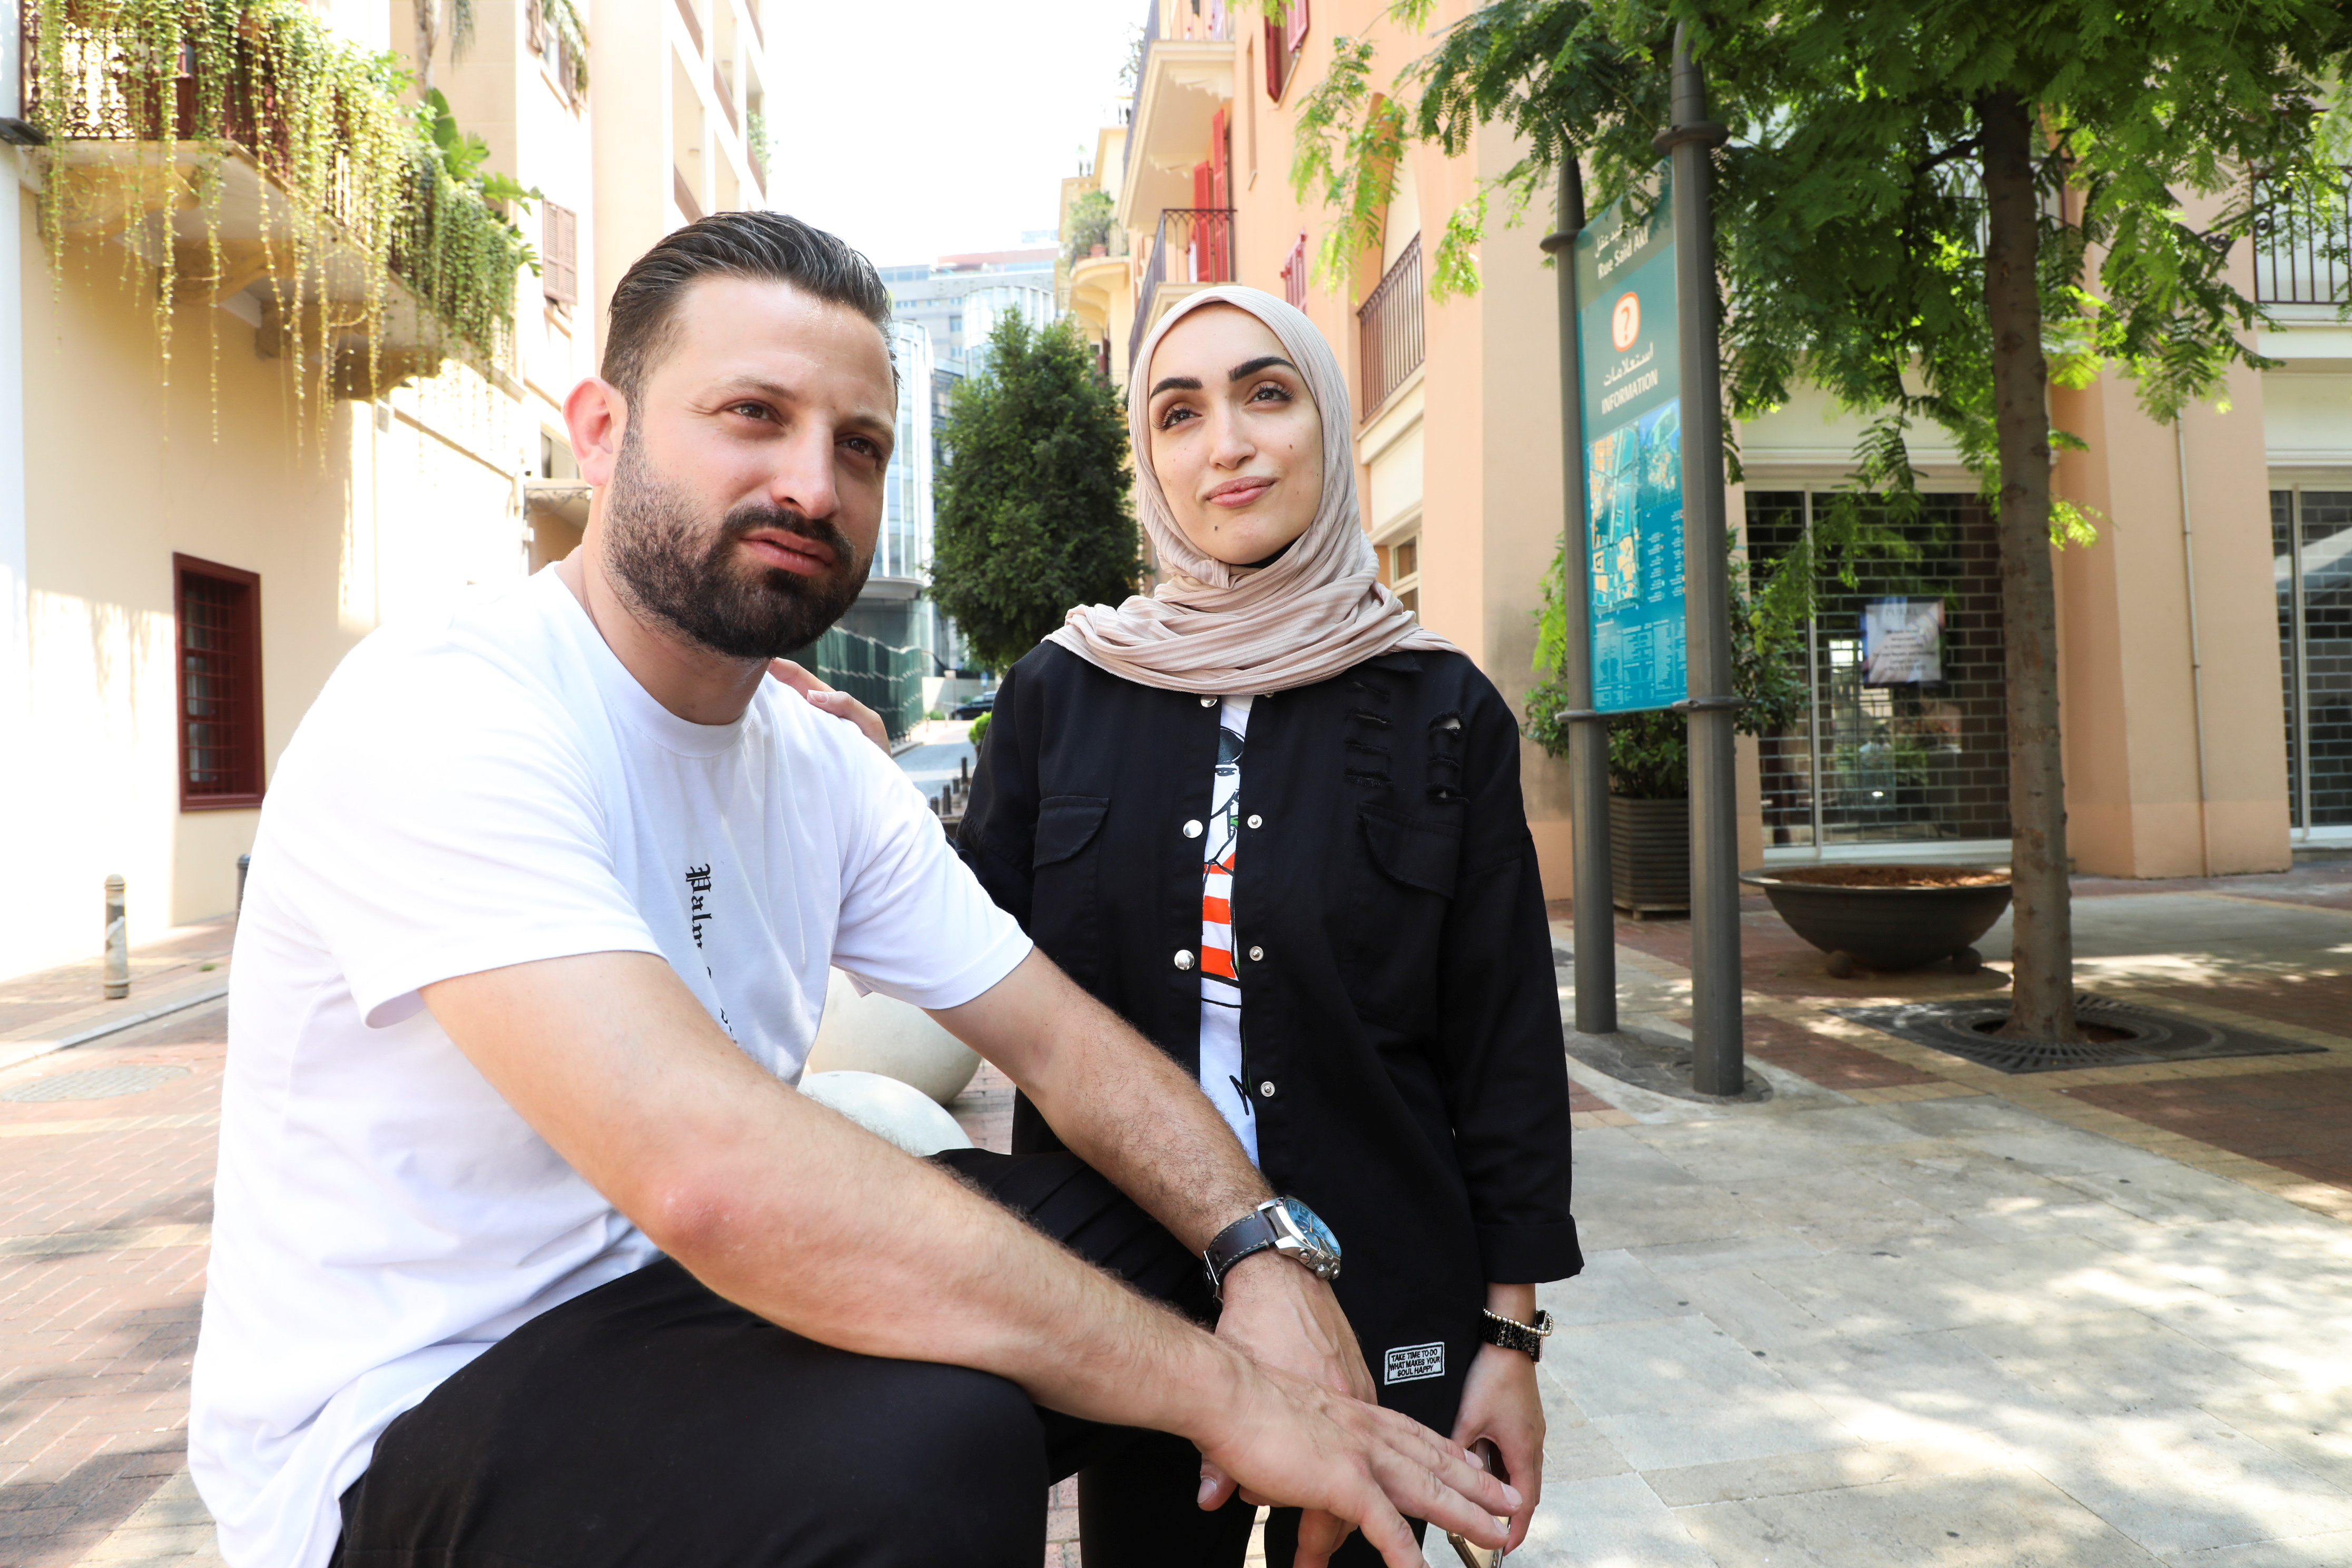 Israa Seblani, a Lebanese doctor and the bride who was caught up in the last year's Beirut port blast during a wedding photoshoot, poses for a picture with her husband Ahmad Subeih, at the same square where they were for their photoshoot in the moment of August 4 explosion, in Beirut, Lebanon July 24, 2021. Picture taken July 24, 2021. REUTERS/Mohamed Azakir